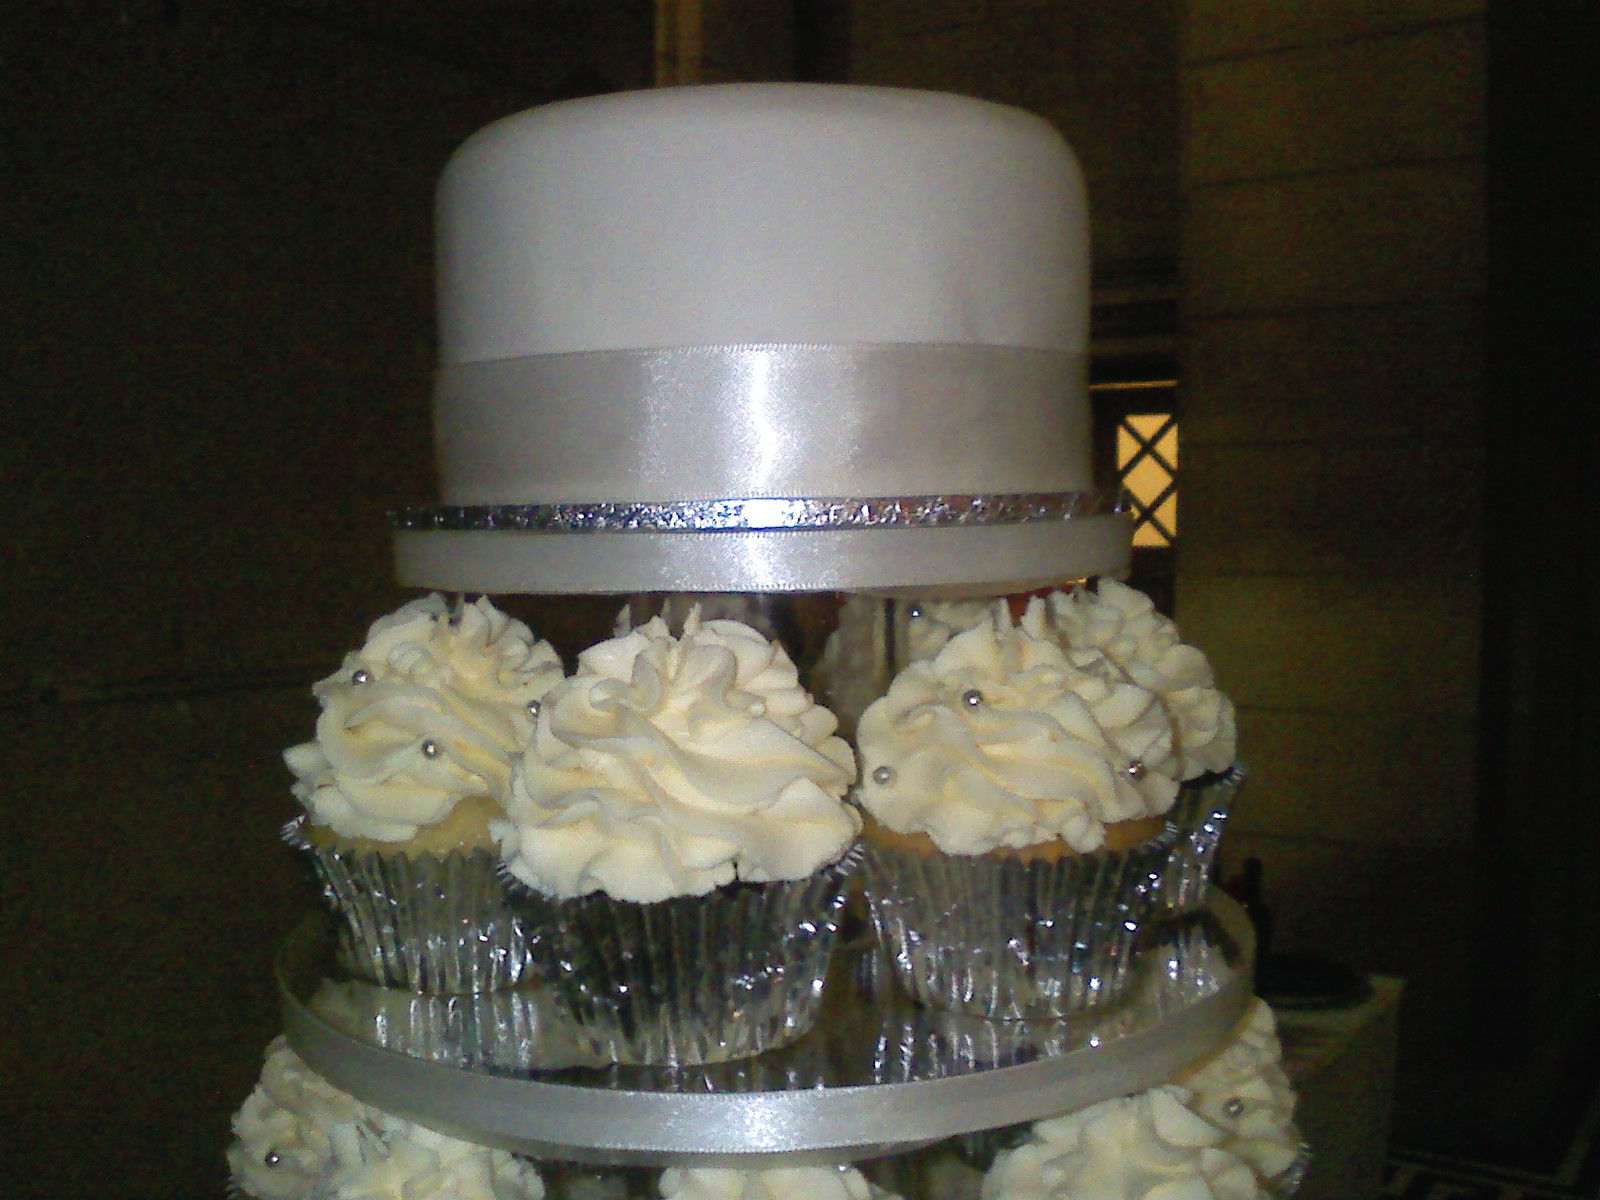 Top cake of wedding cupcake stand